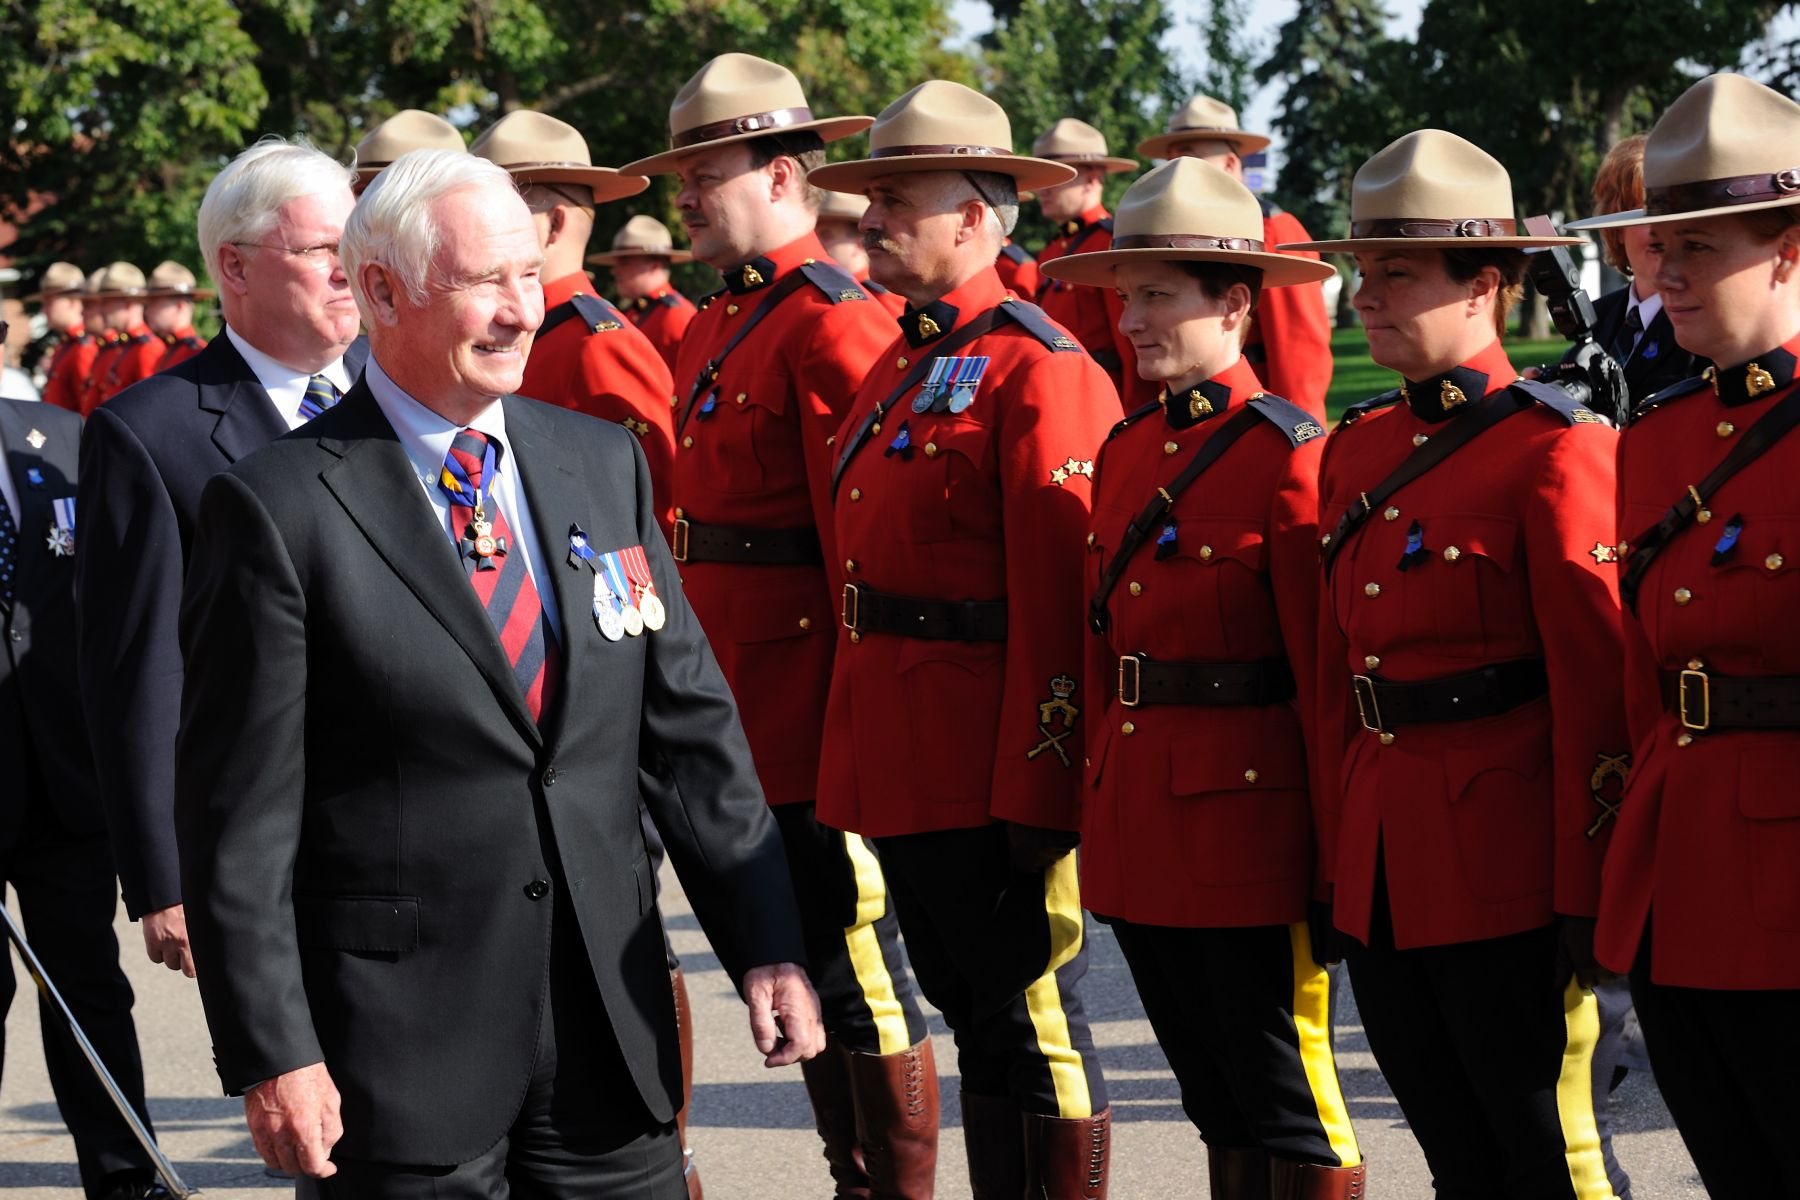 Accompanied by RCMP Commissioner William Elliott, His Excellency the Right Honourable David Johnston, Governor General of Canada, attended a parade and ceremony in honour of RCMP members who have died in the line of duty since 1876. The event was held on September 11 at the RCMP National Memorial Ceremony in Regina.